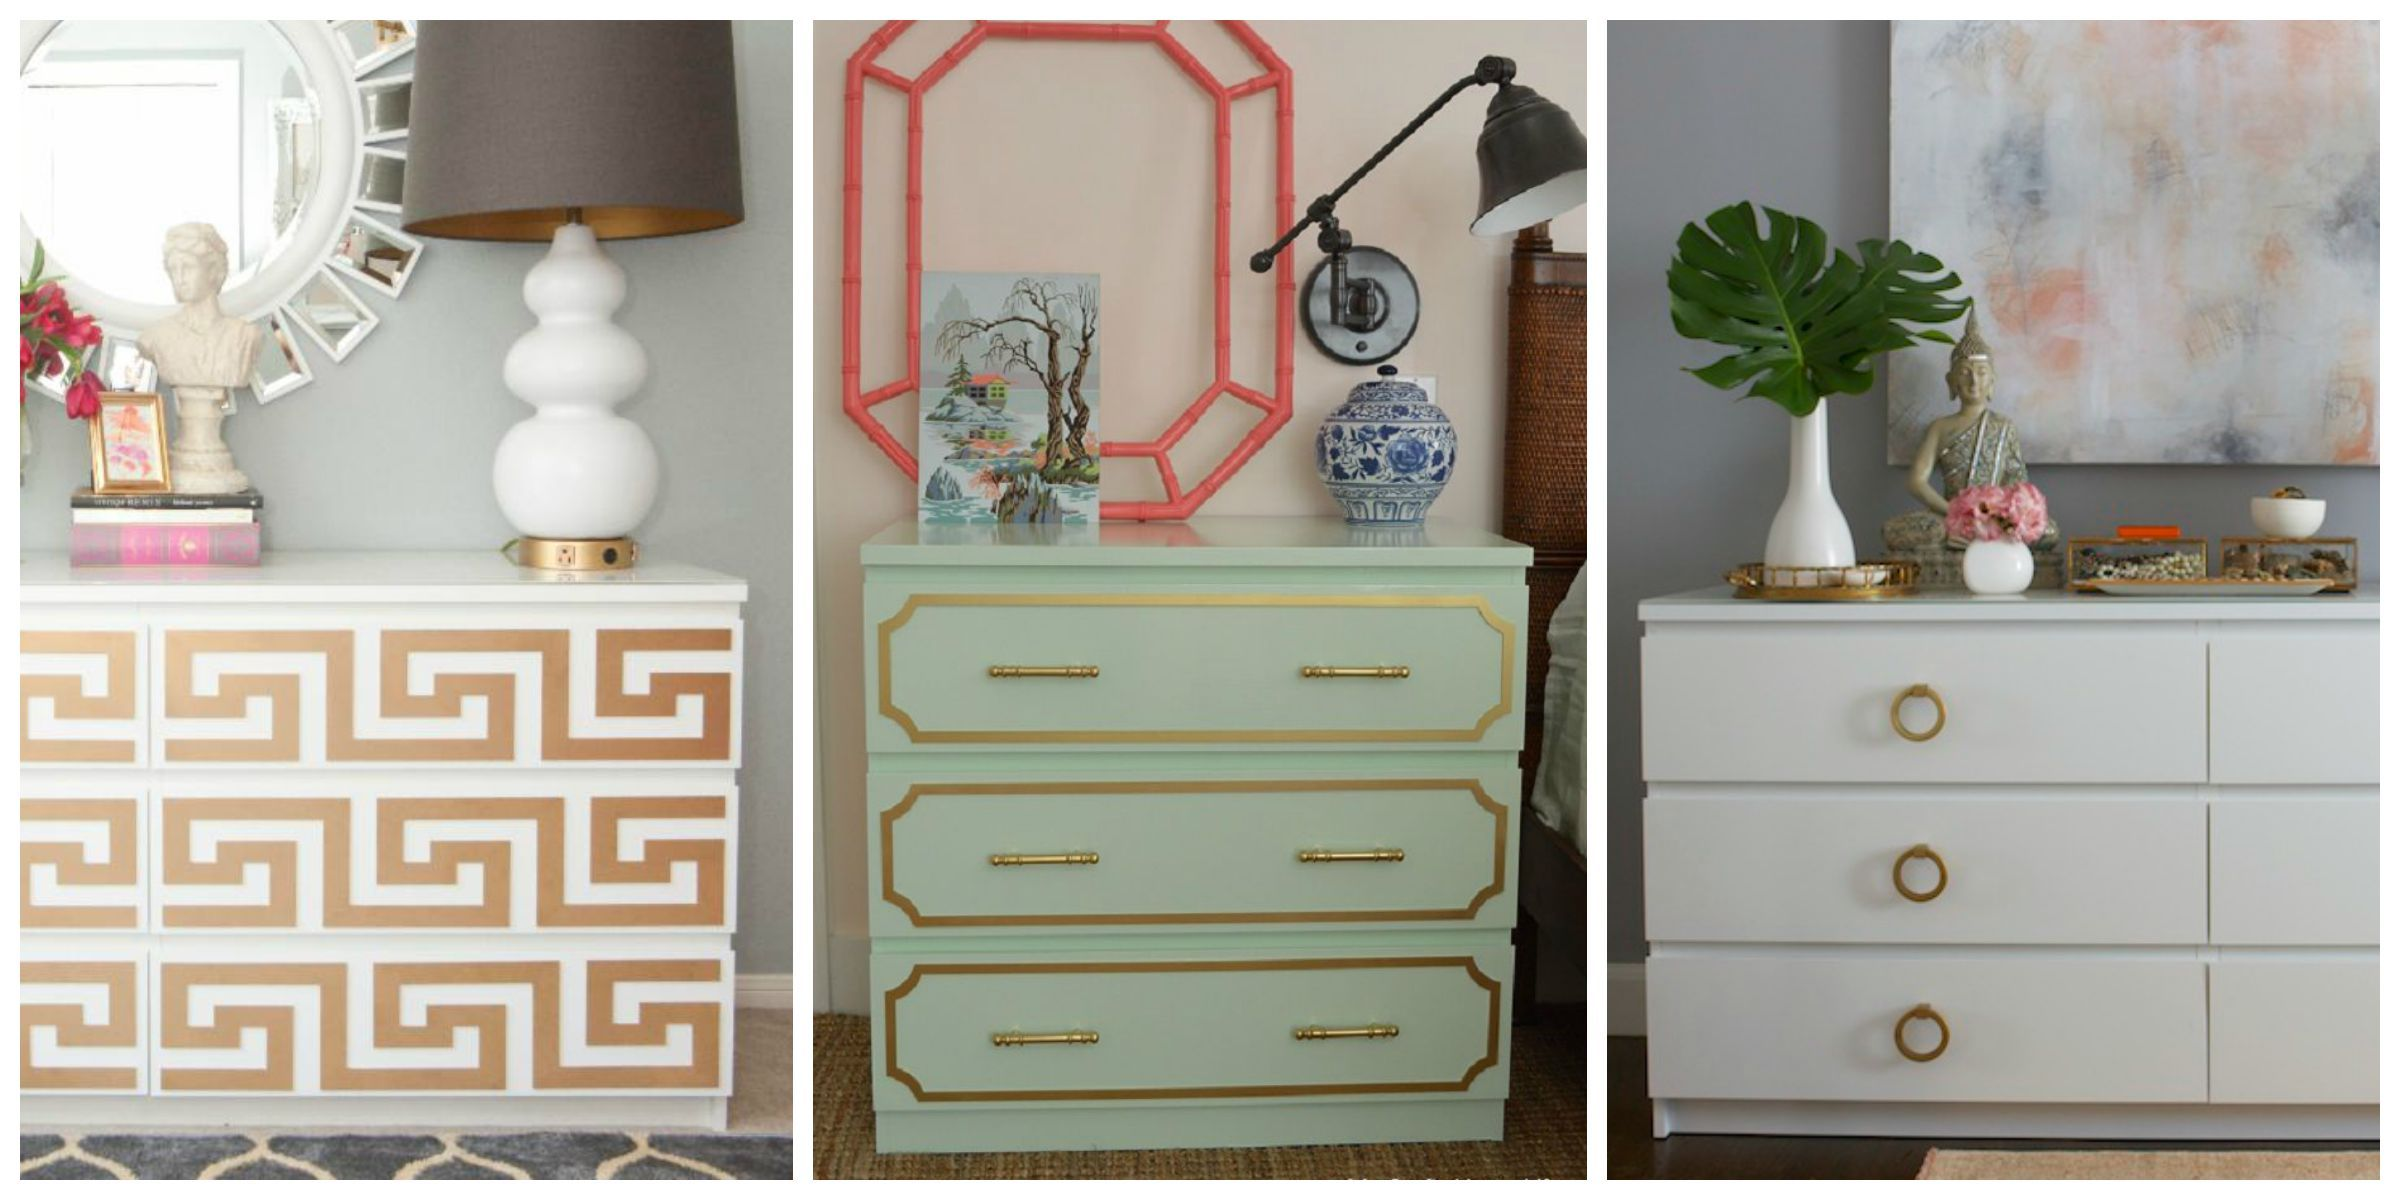 12 Makeovers For The Ikea Dresser Everyone Owns Meubles Ikea Comment Repeindre Un Meuble Ikea Repeindre Meuble Ikea